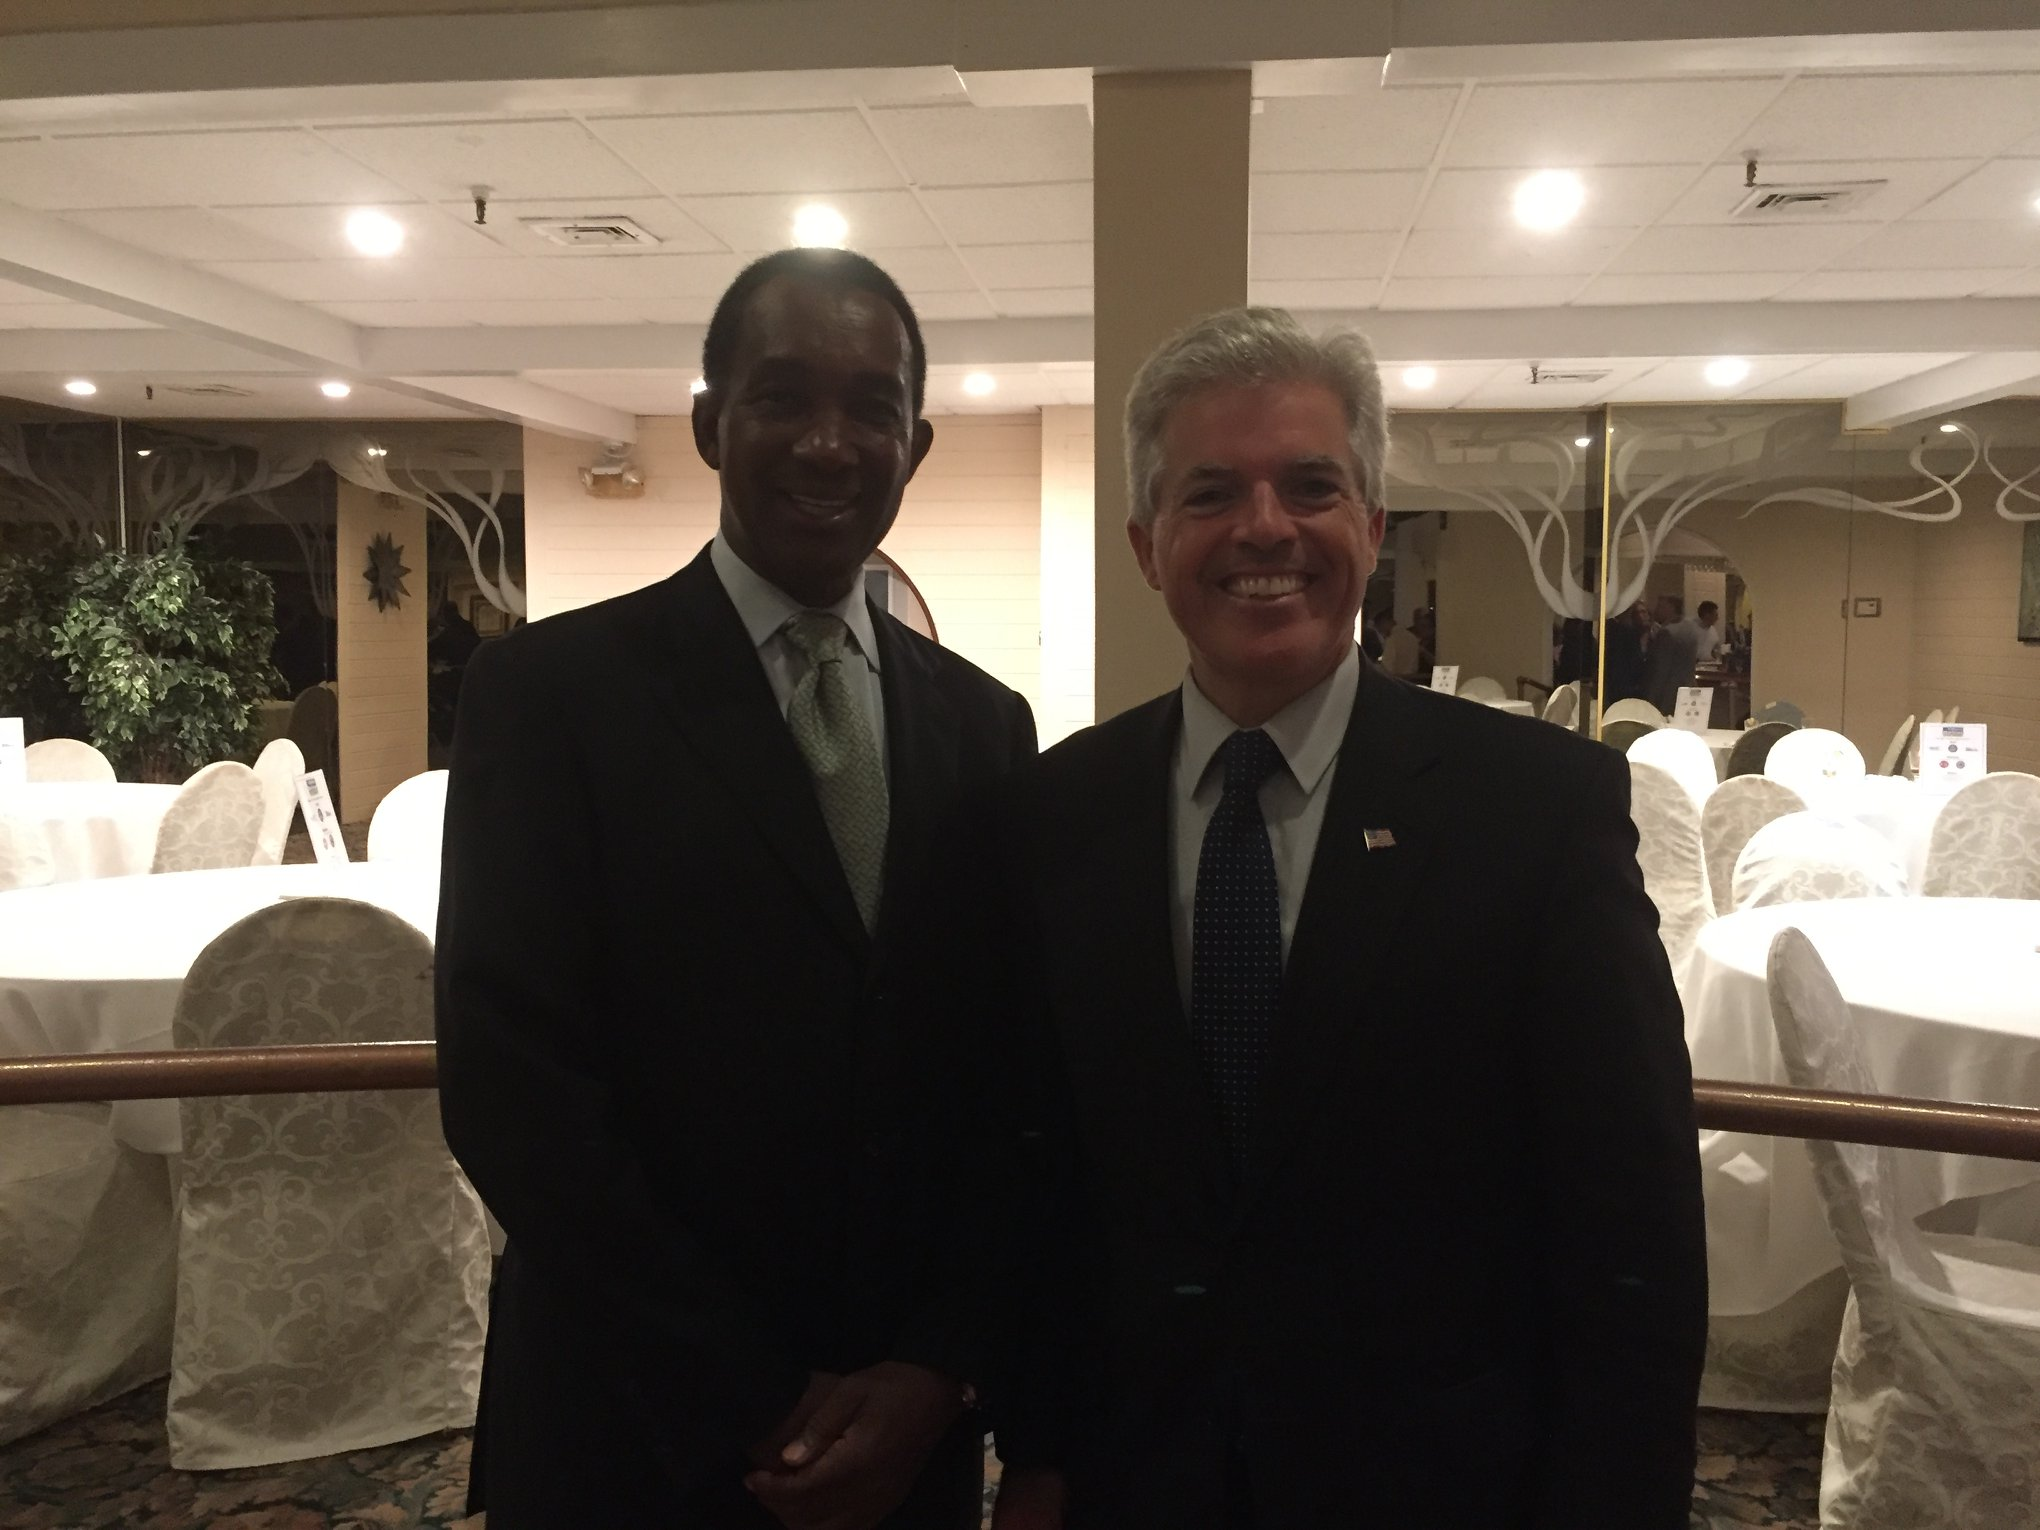 Clyde Parker and Suffolk County Executive Steven Bellone.